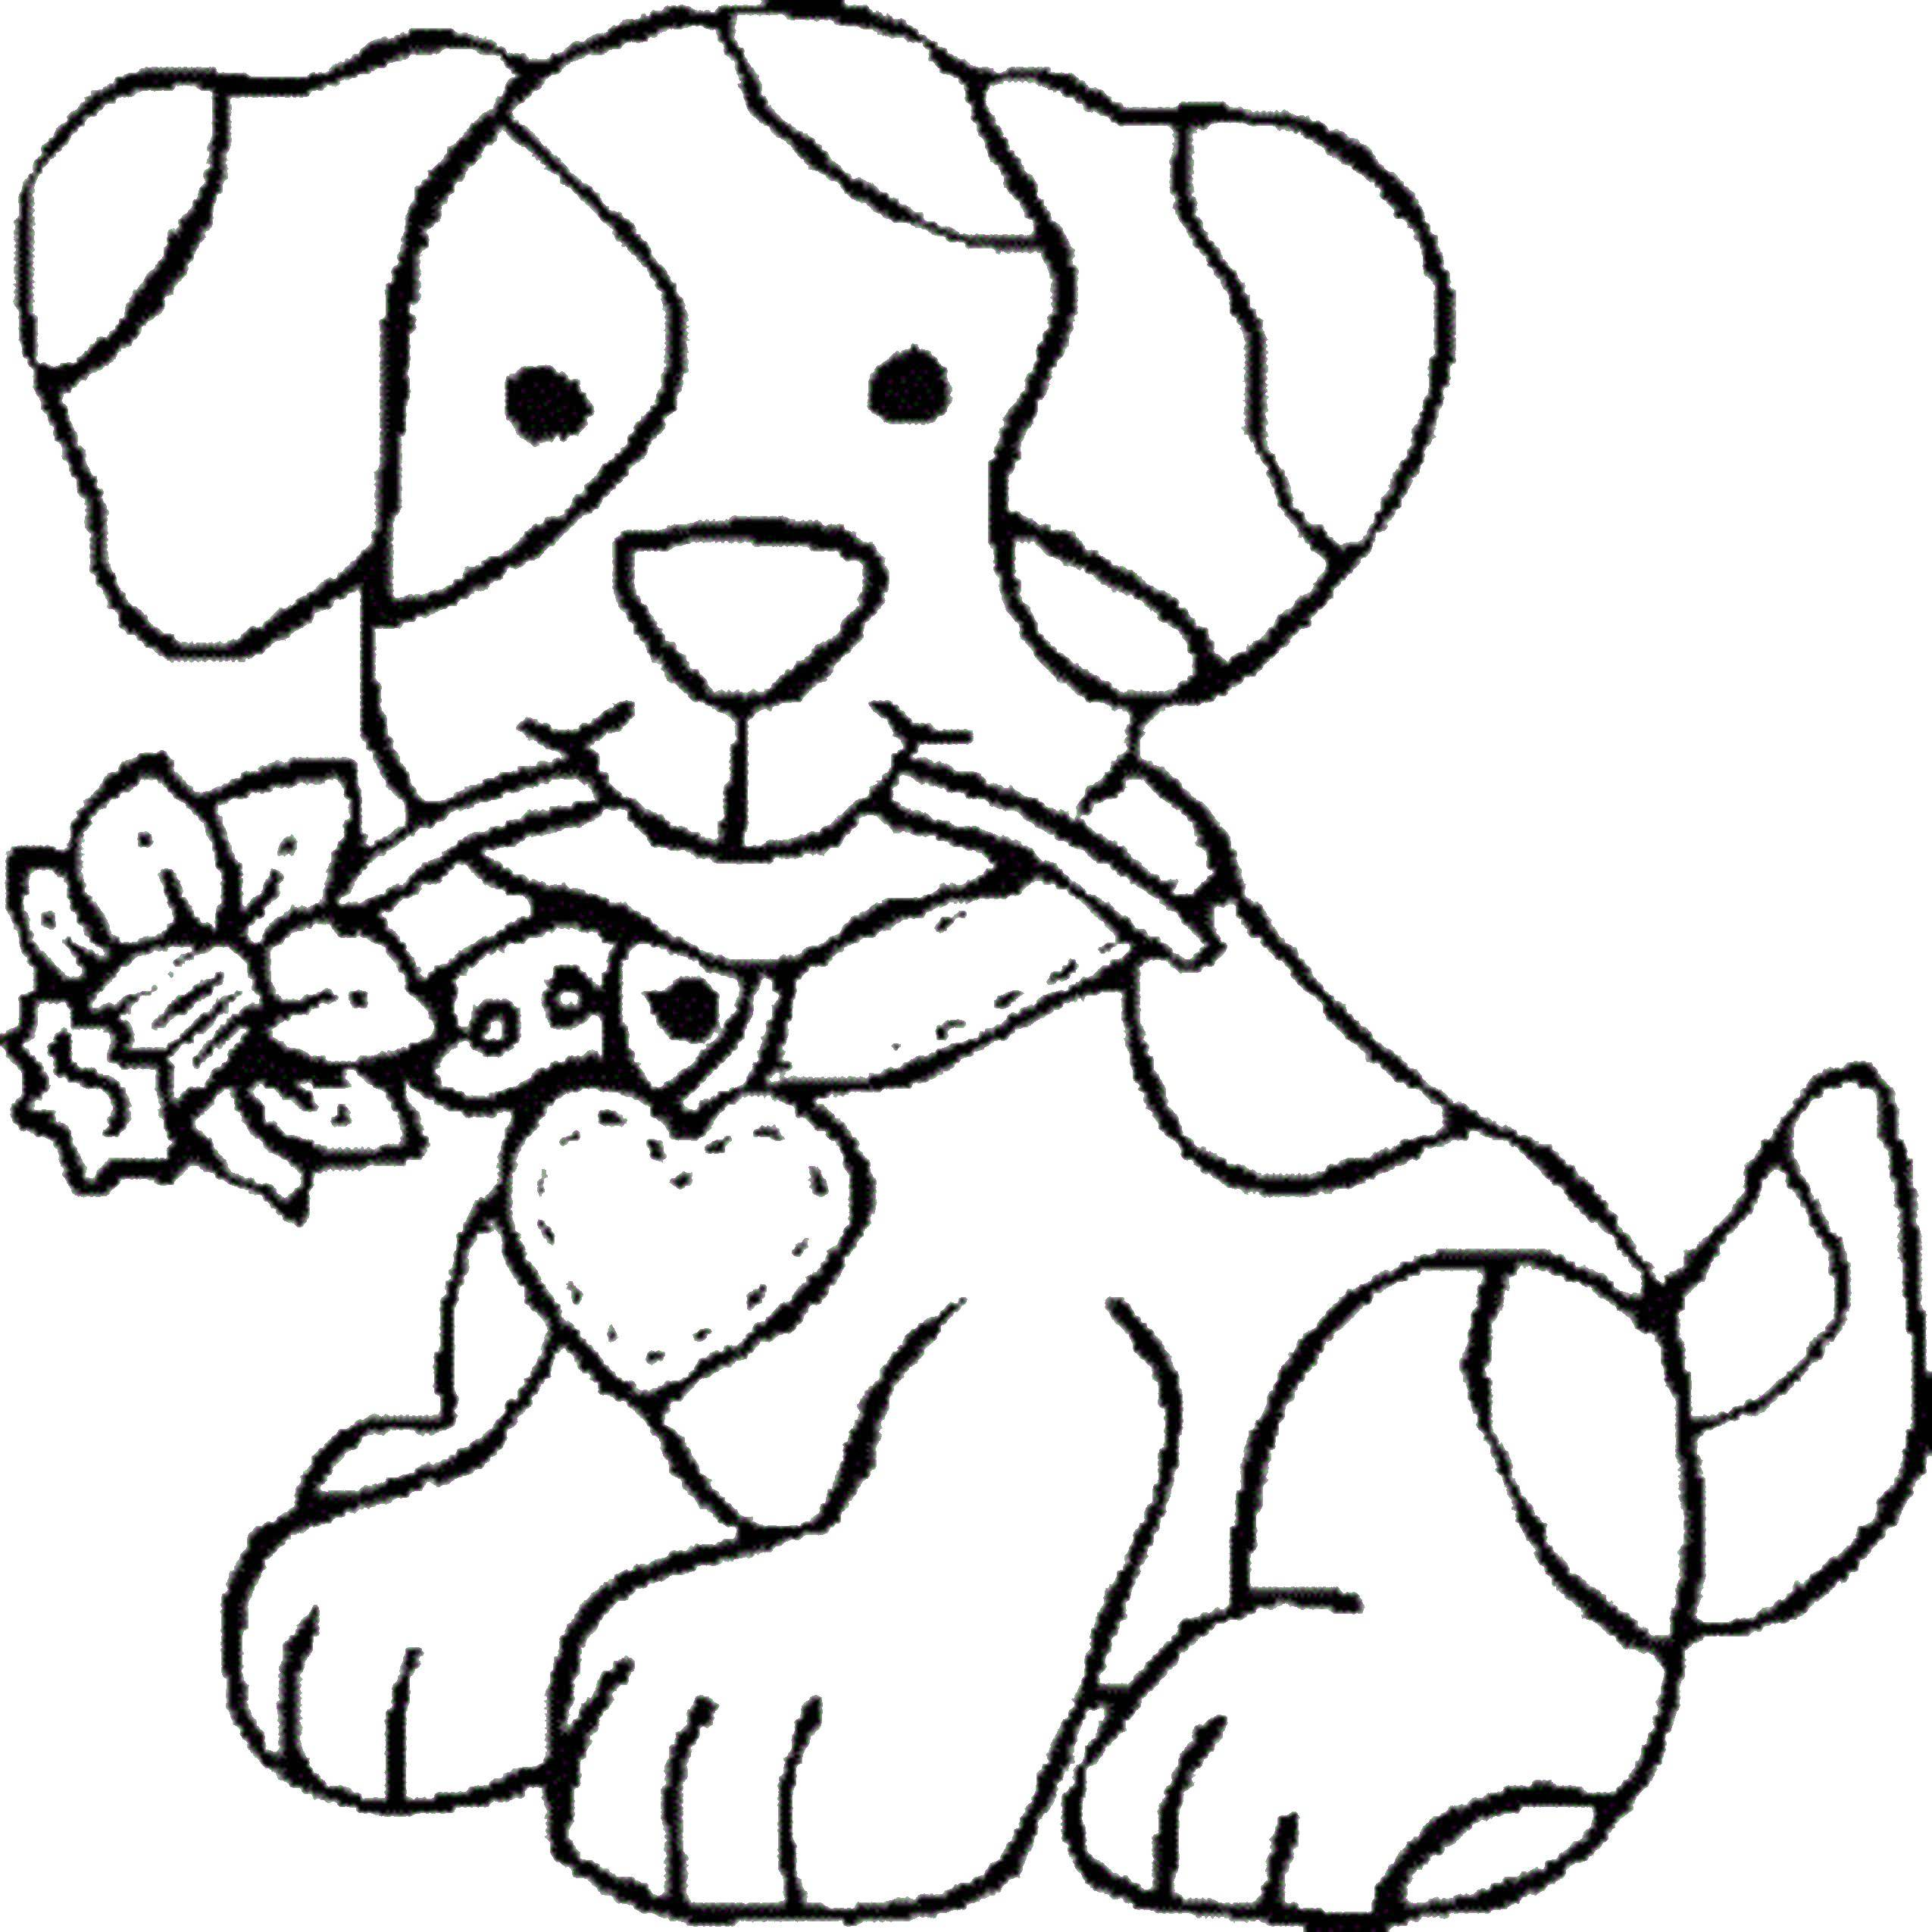 Coloring sheet dogs Download Celebrity.  Print ,coloring,